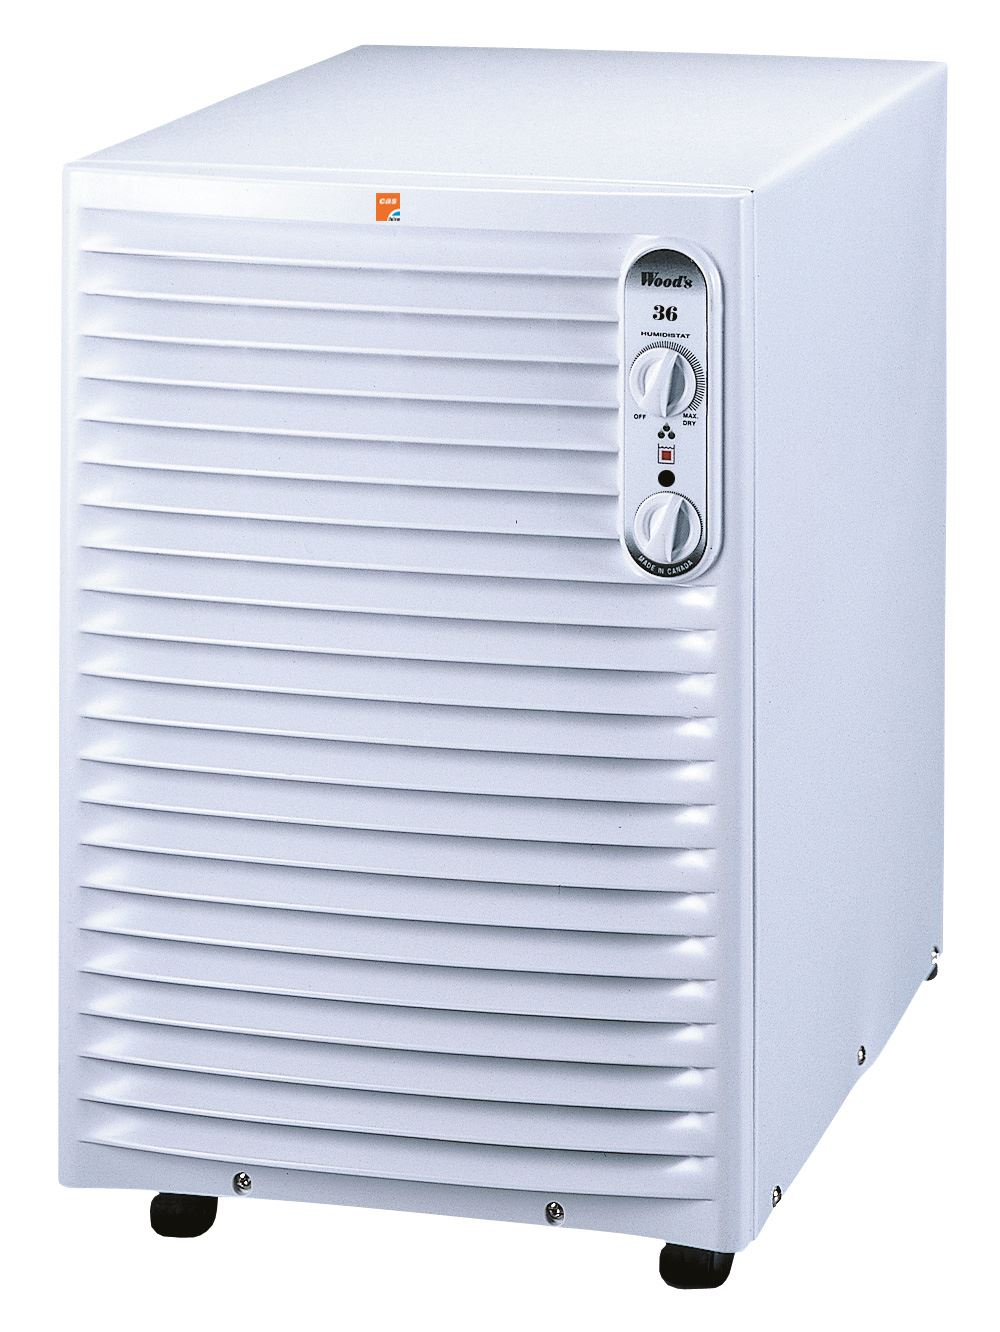 dehumidifier pros and cons